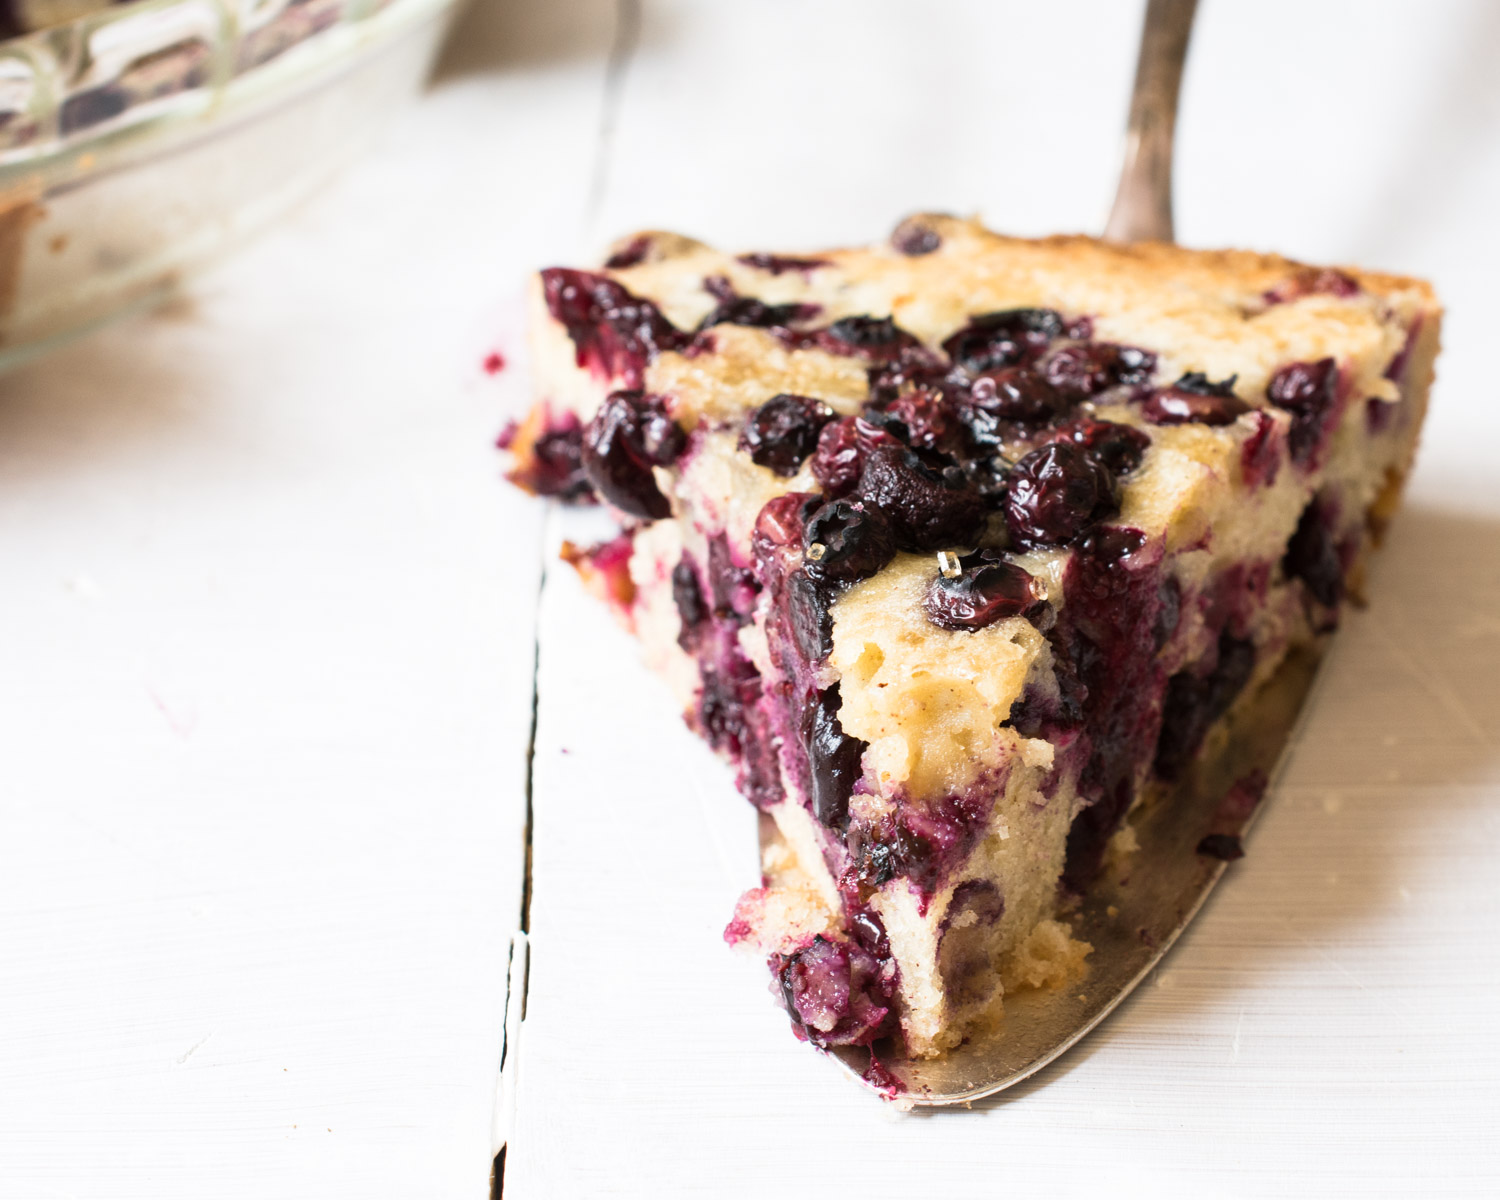 No_Crust_Blueberry_Pie-10.jpg